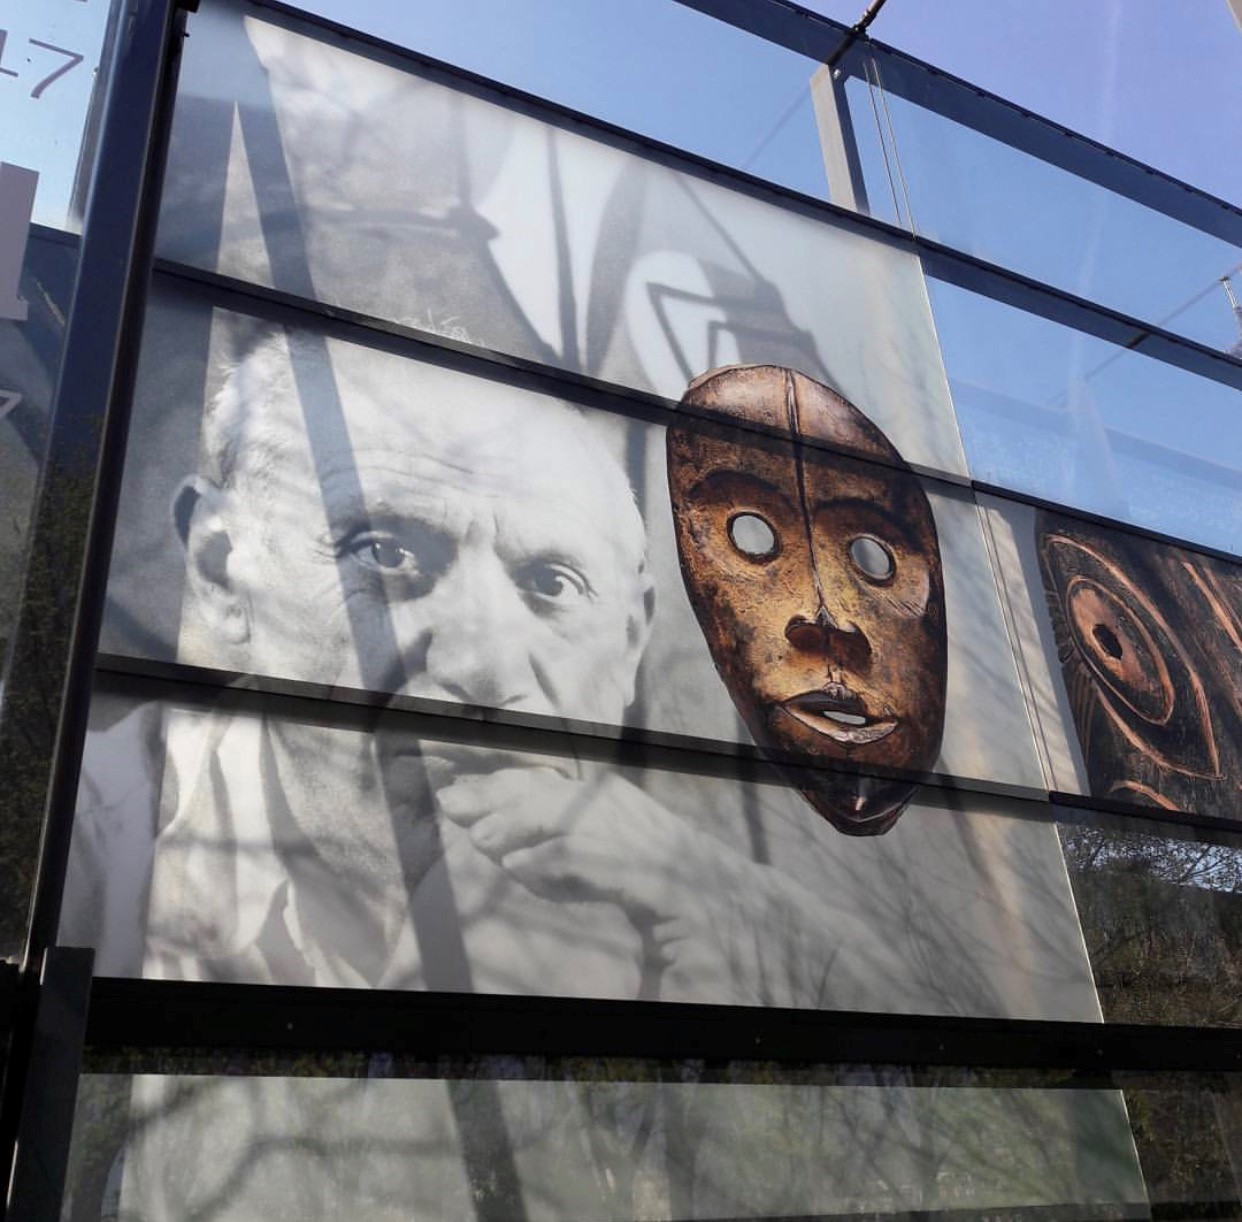 The external glass wall of the museum. Picasso's portrait is by Herbert List.